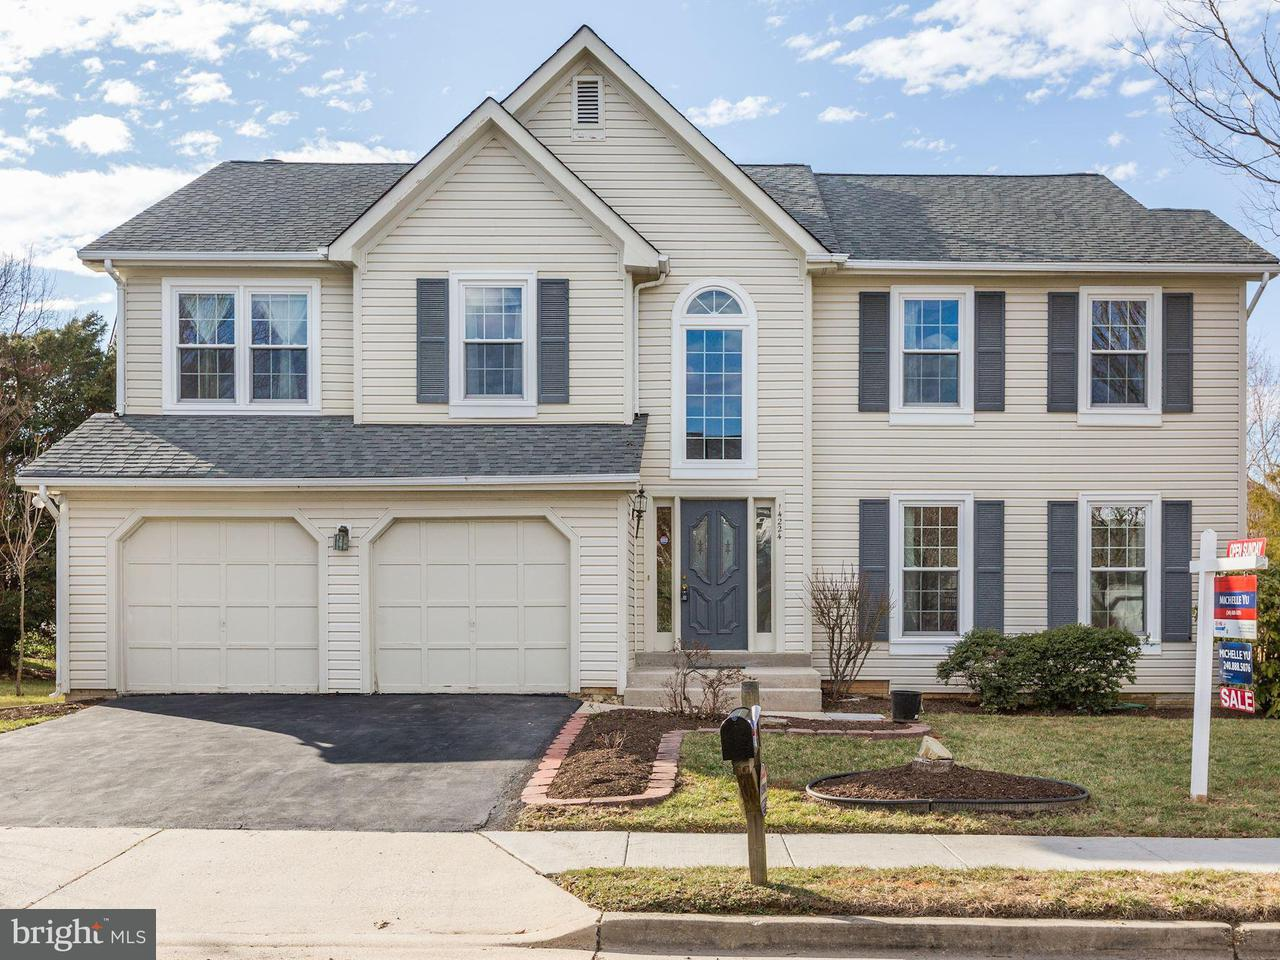 Single Family Home for Sale at 14224 Secluded Lane 14224 Secluded Lane North Potomac, Maryland 20878 United States